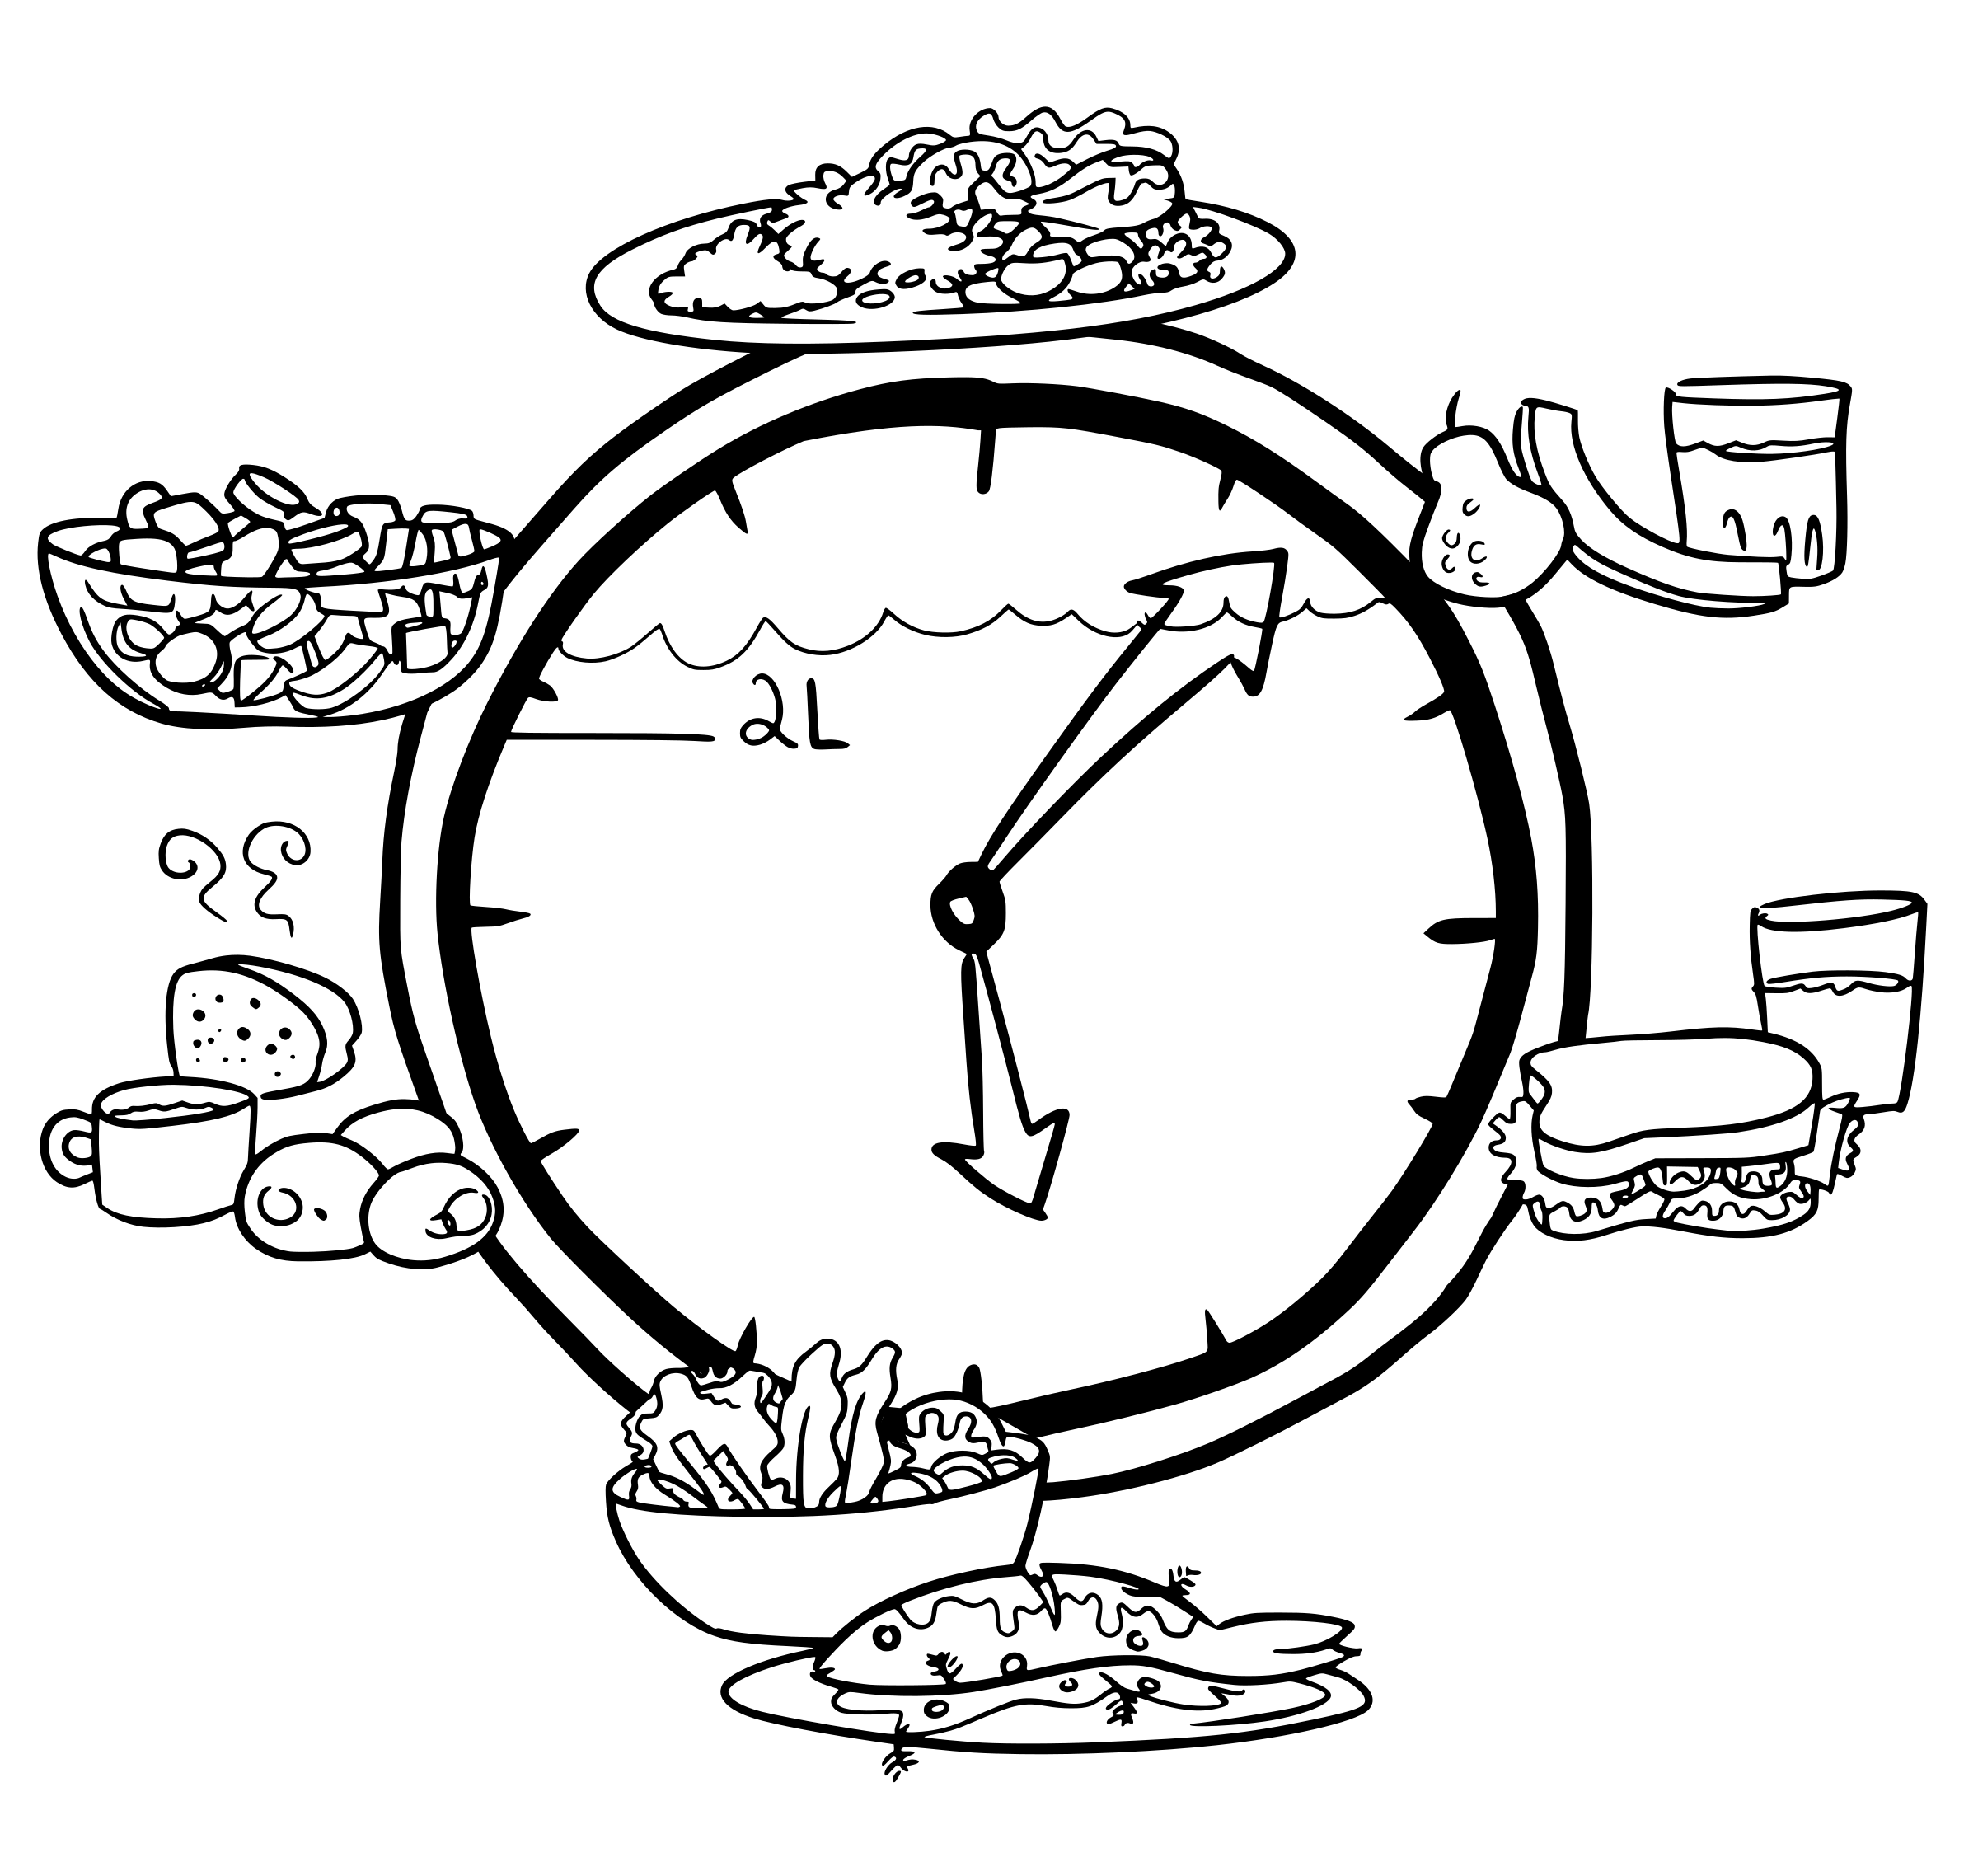 Food Clock - No Colour by j4p4n